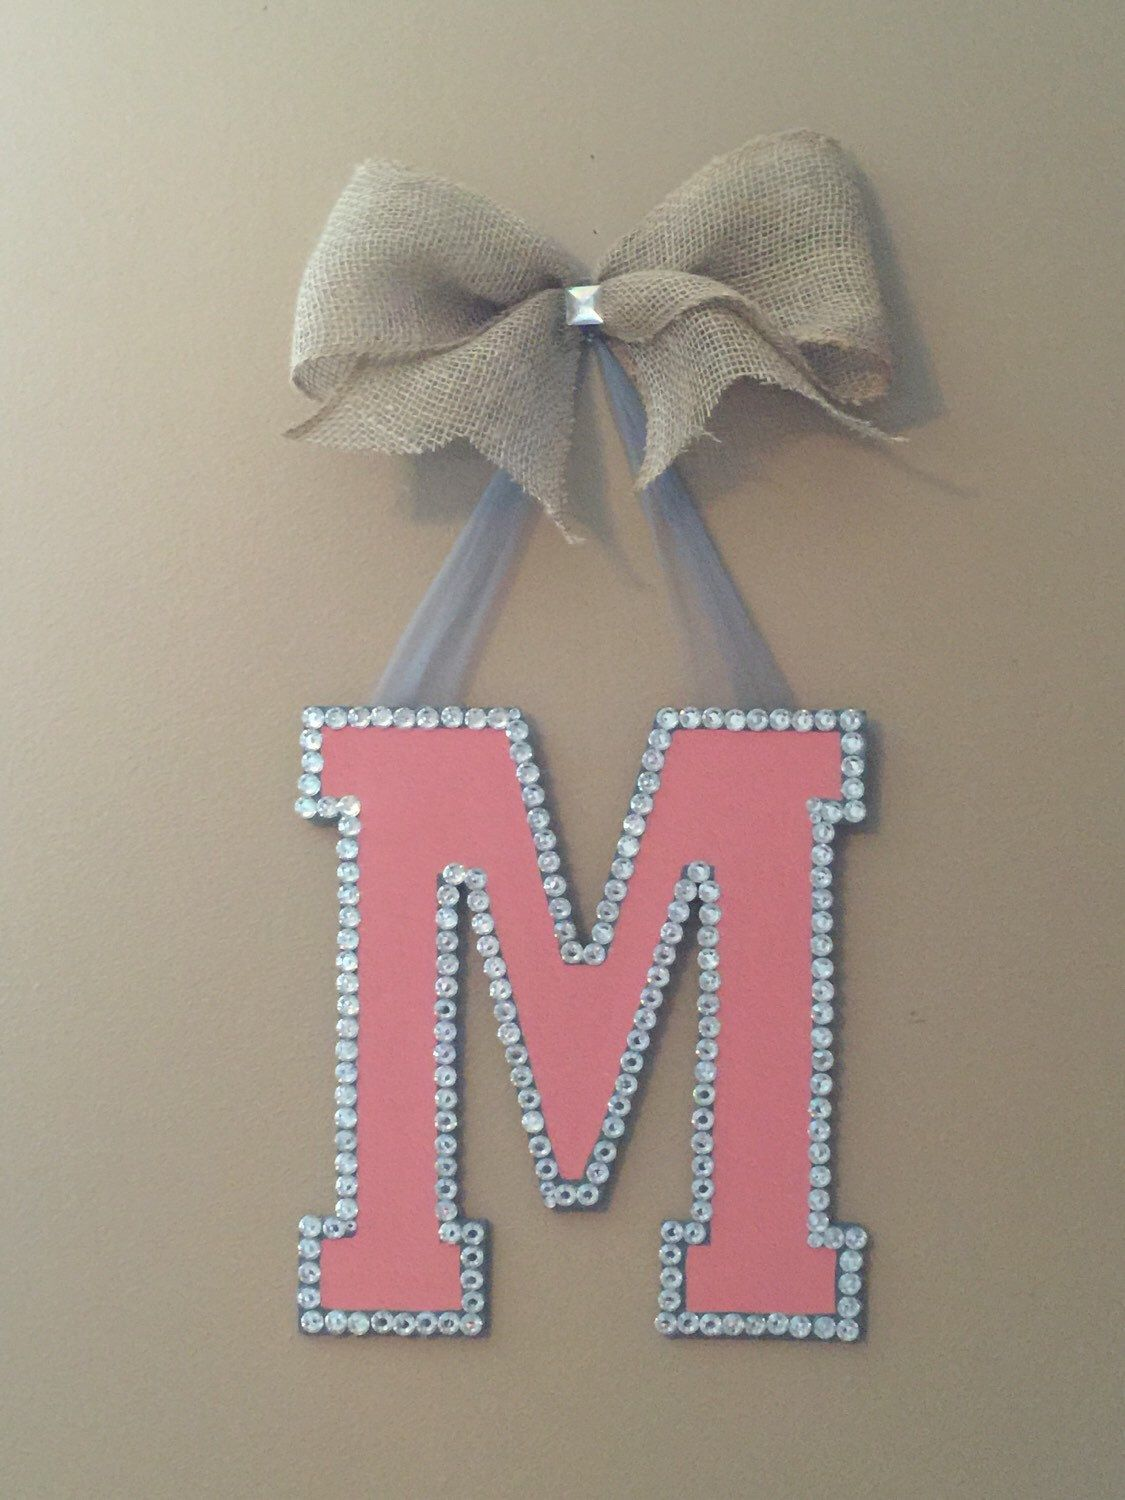 Glamorous Monogram Initial Door Hanger, Wreath, Front Door Hanger, Personalized, Letter Door Hanger, Custom Orders Welcome! by GBTButtonsNBows on Etsy https://www.etsy.com/listing/235599313/glamorous-monogram-initial-door-hanger